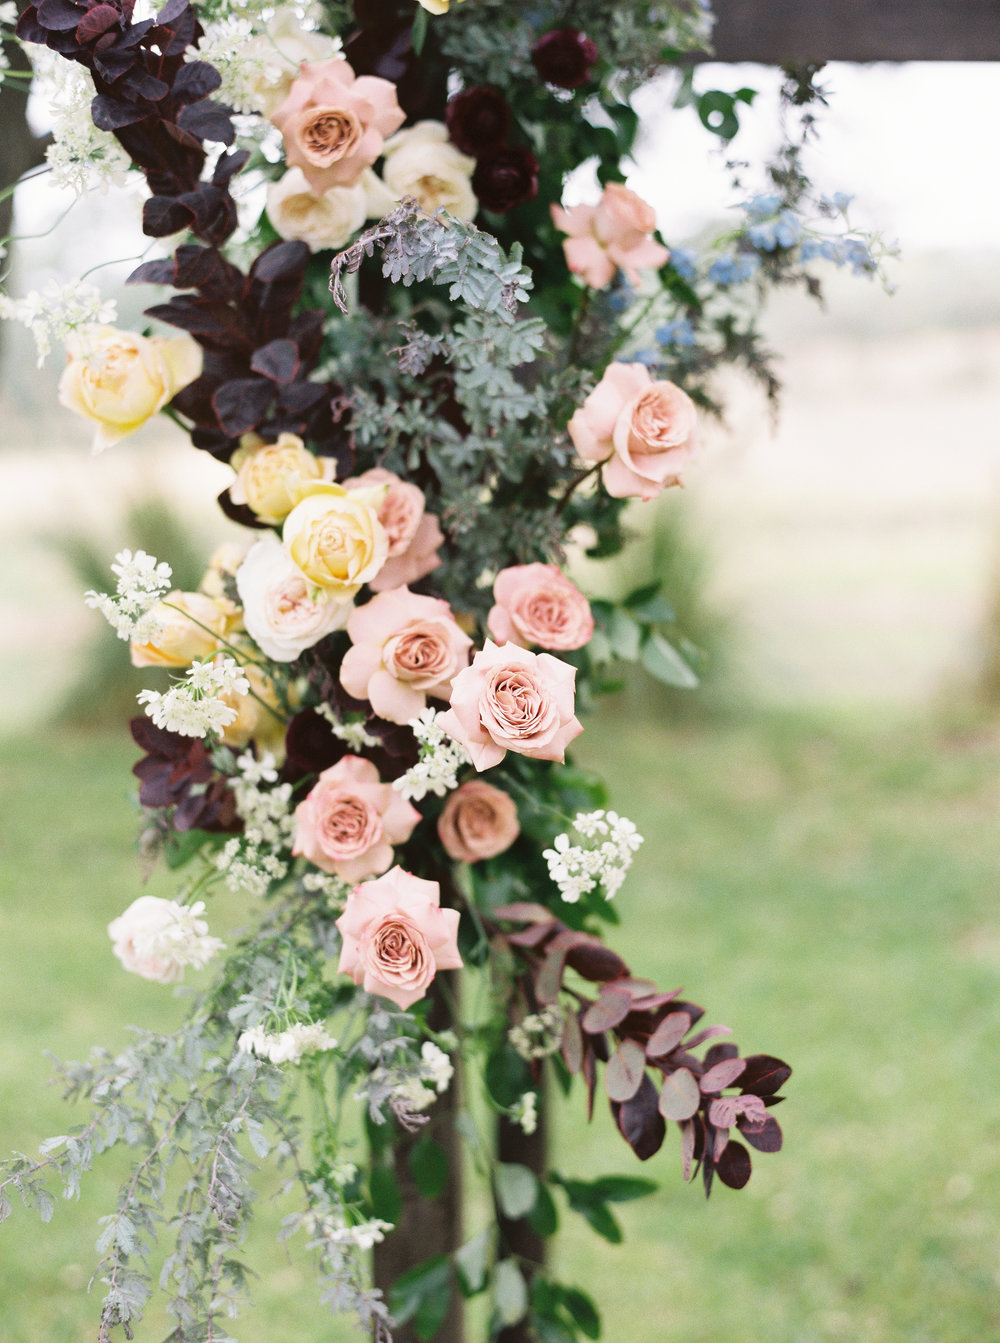 Blog flowers by color theory collective portland oregon wedding wedding flowers designed by color theory collective and serving the portland oregon area top wedding florist in pdx and west coast junglespirit Choice Image